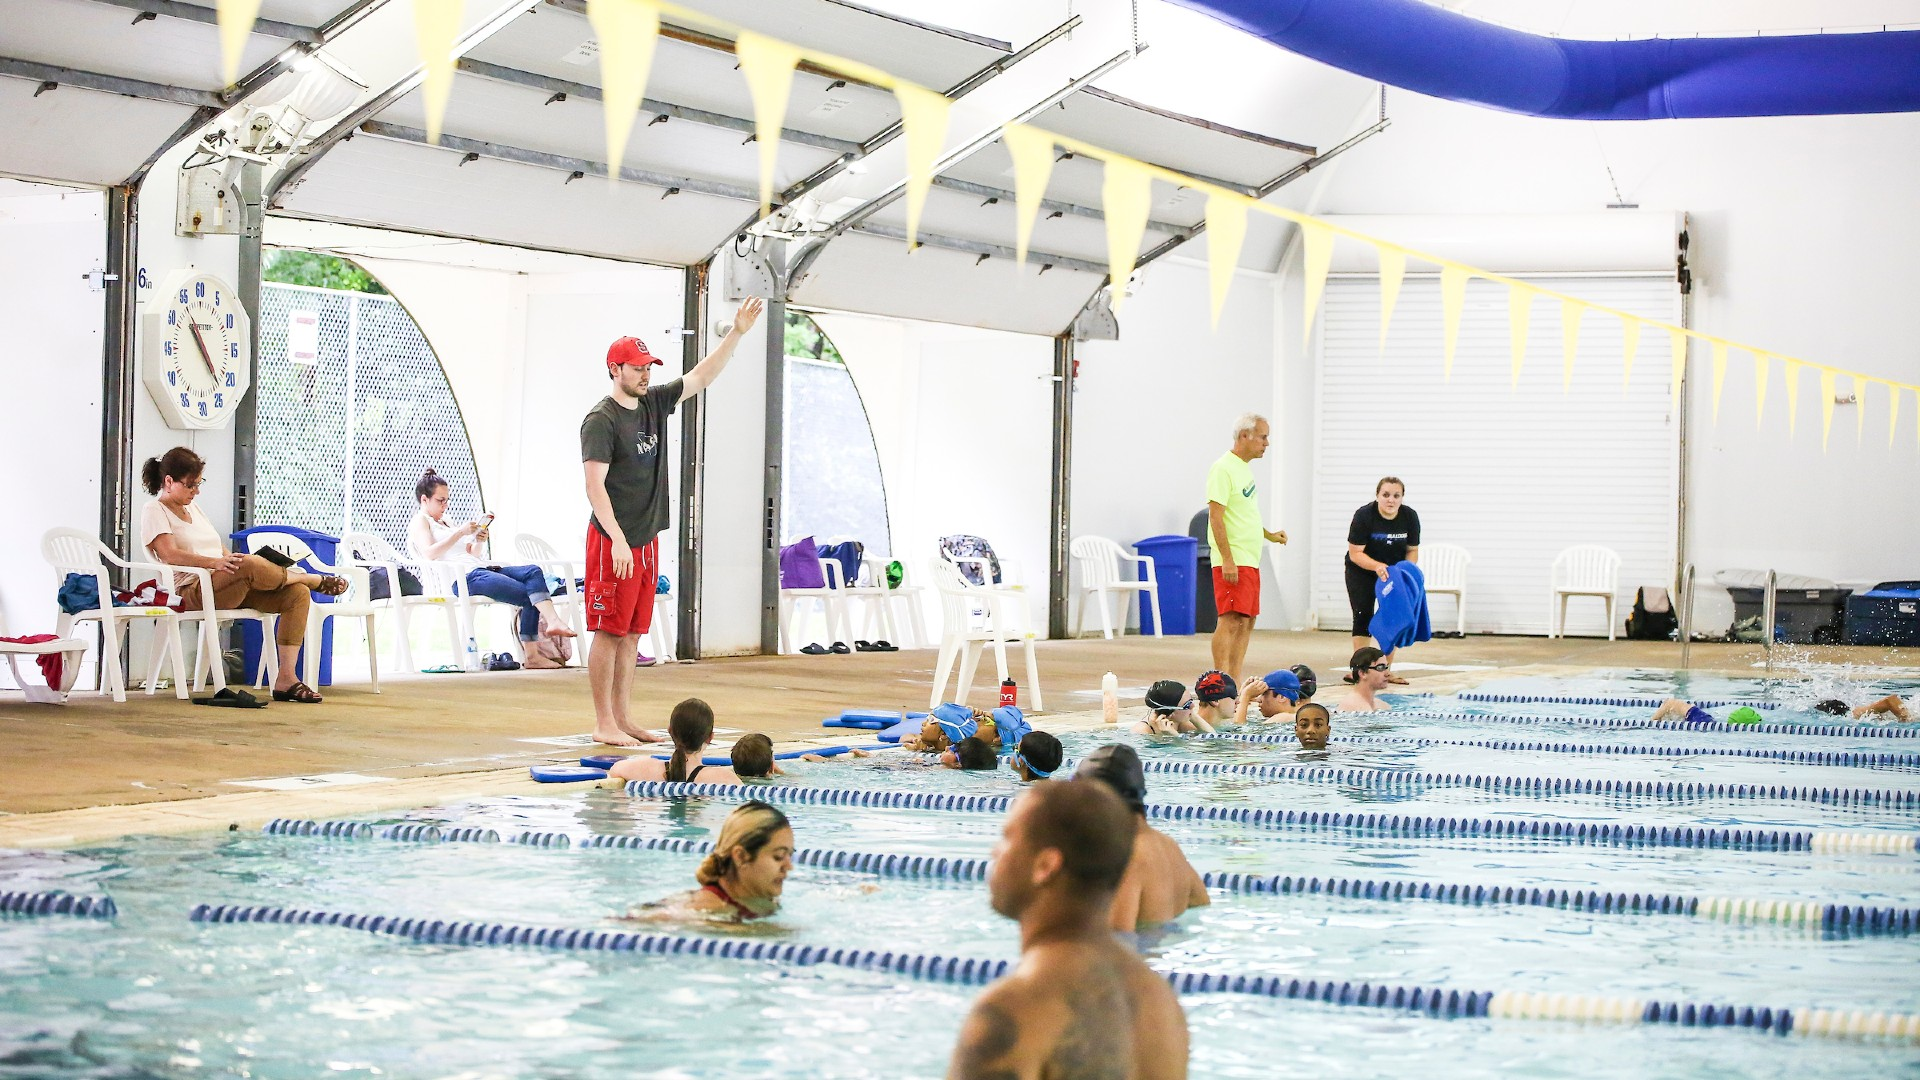 Instructor teaching a swim class at Millbrook Exchange Pool in Raleigh.